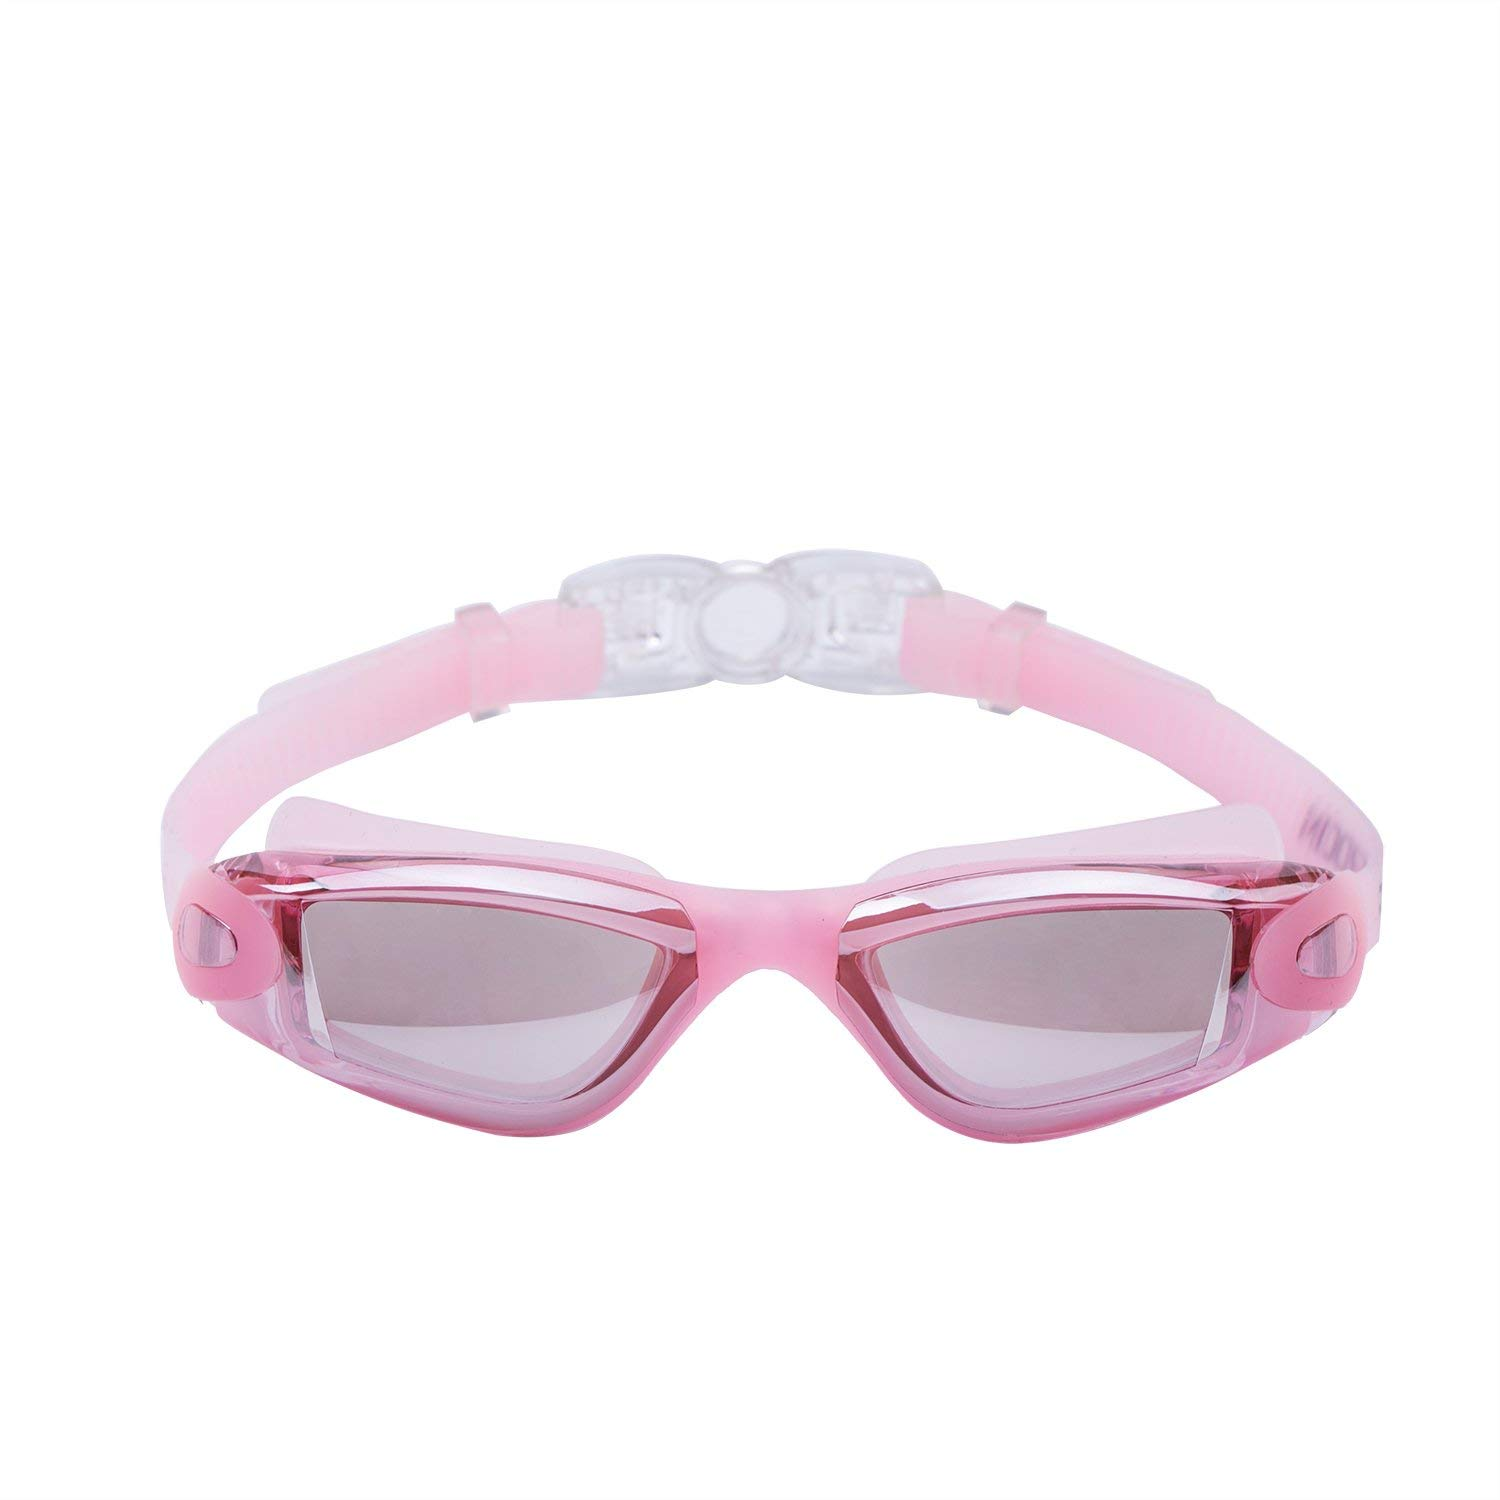 543f0023ed0d Buy Swimming Goggles Kids